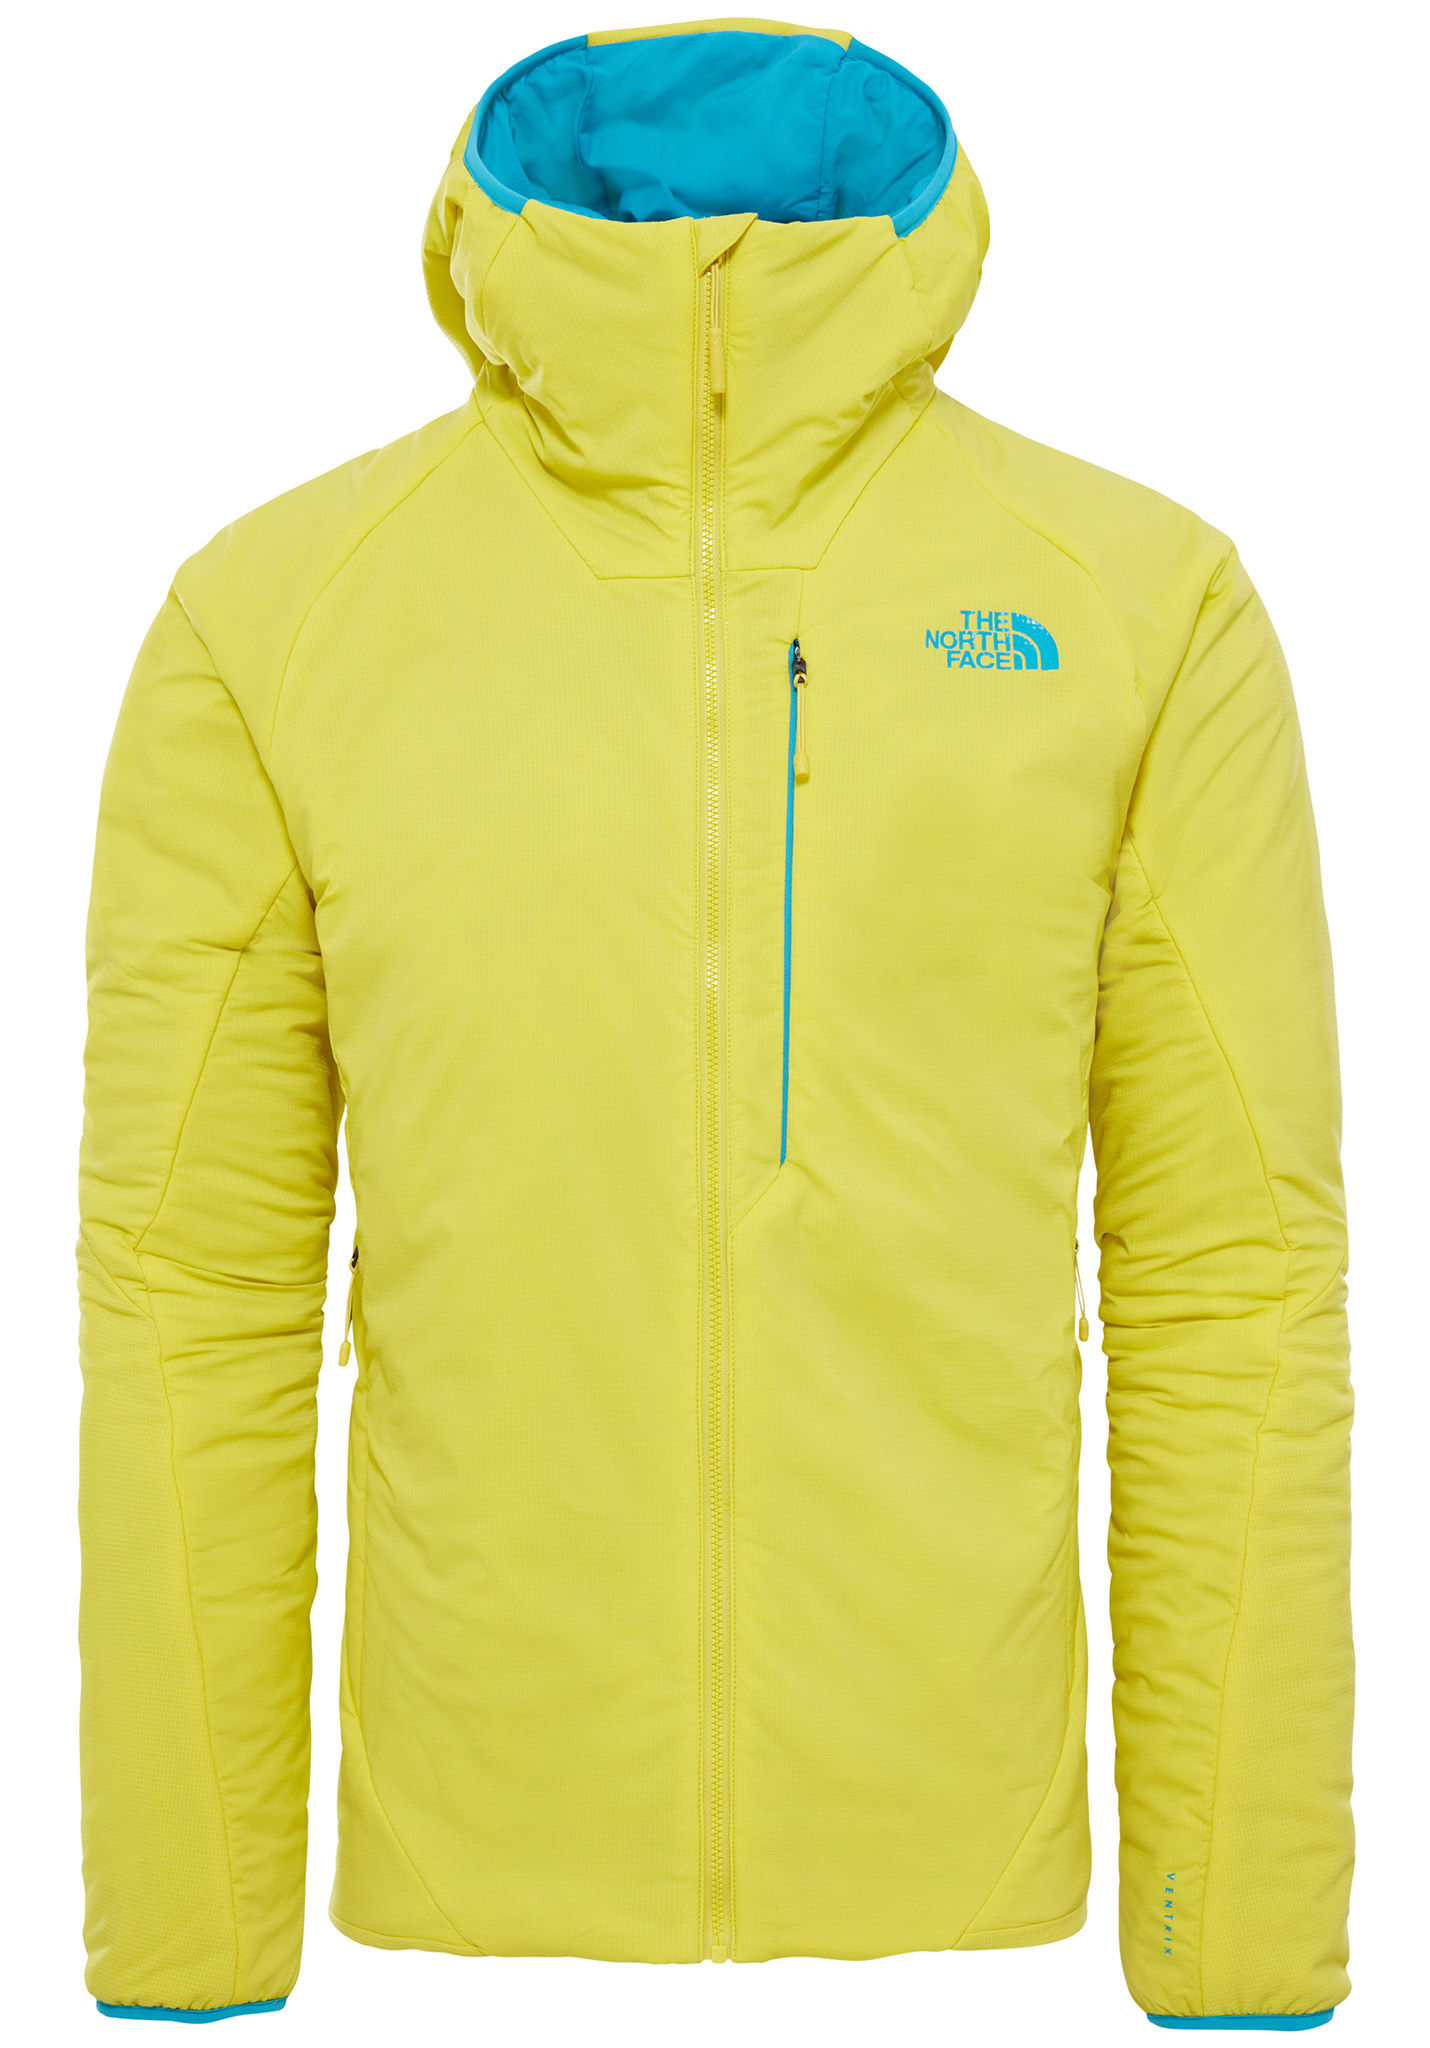 374993ac30 THE NORTH FACE Ventrix - Outdoorjacke für Herren - Gelb - Planet Sports